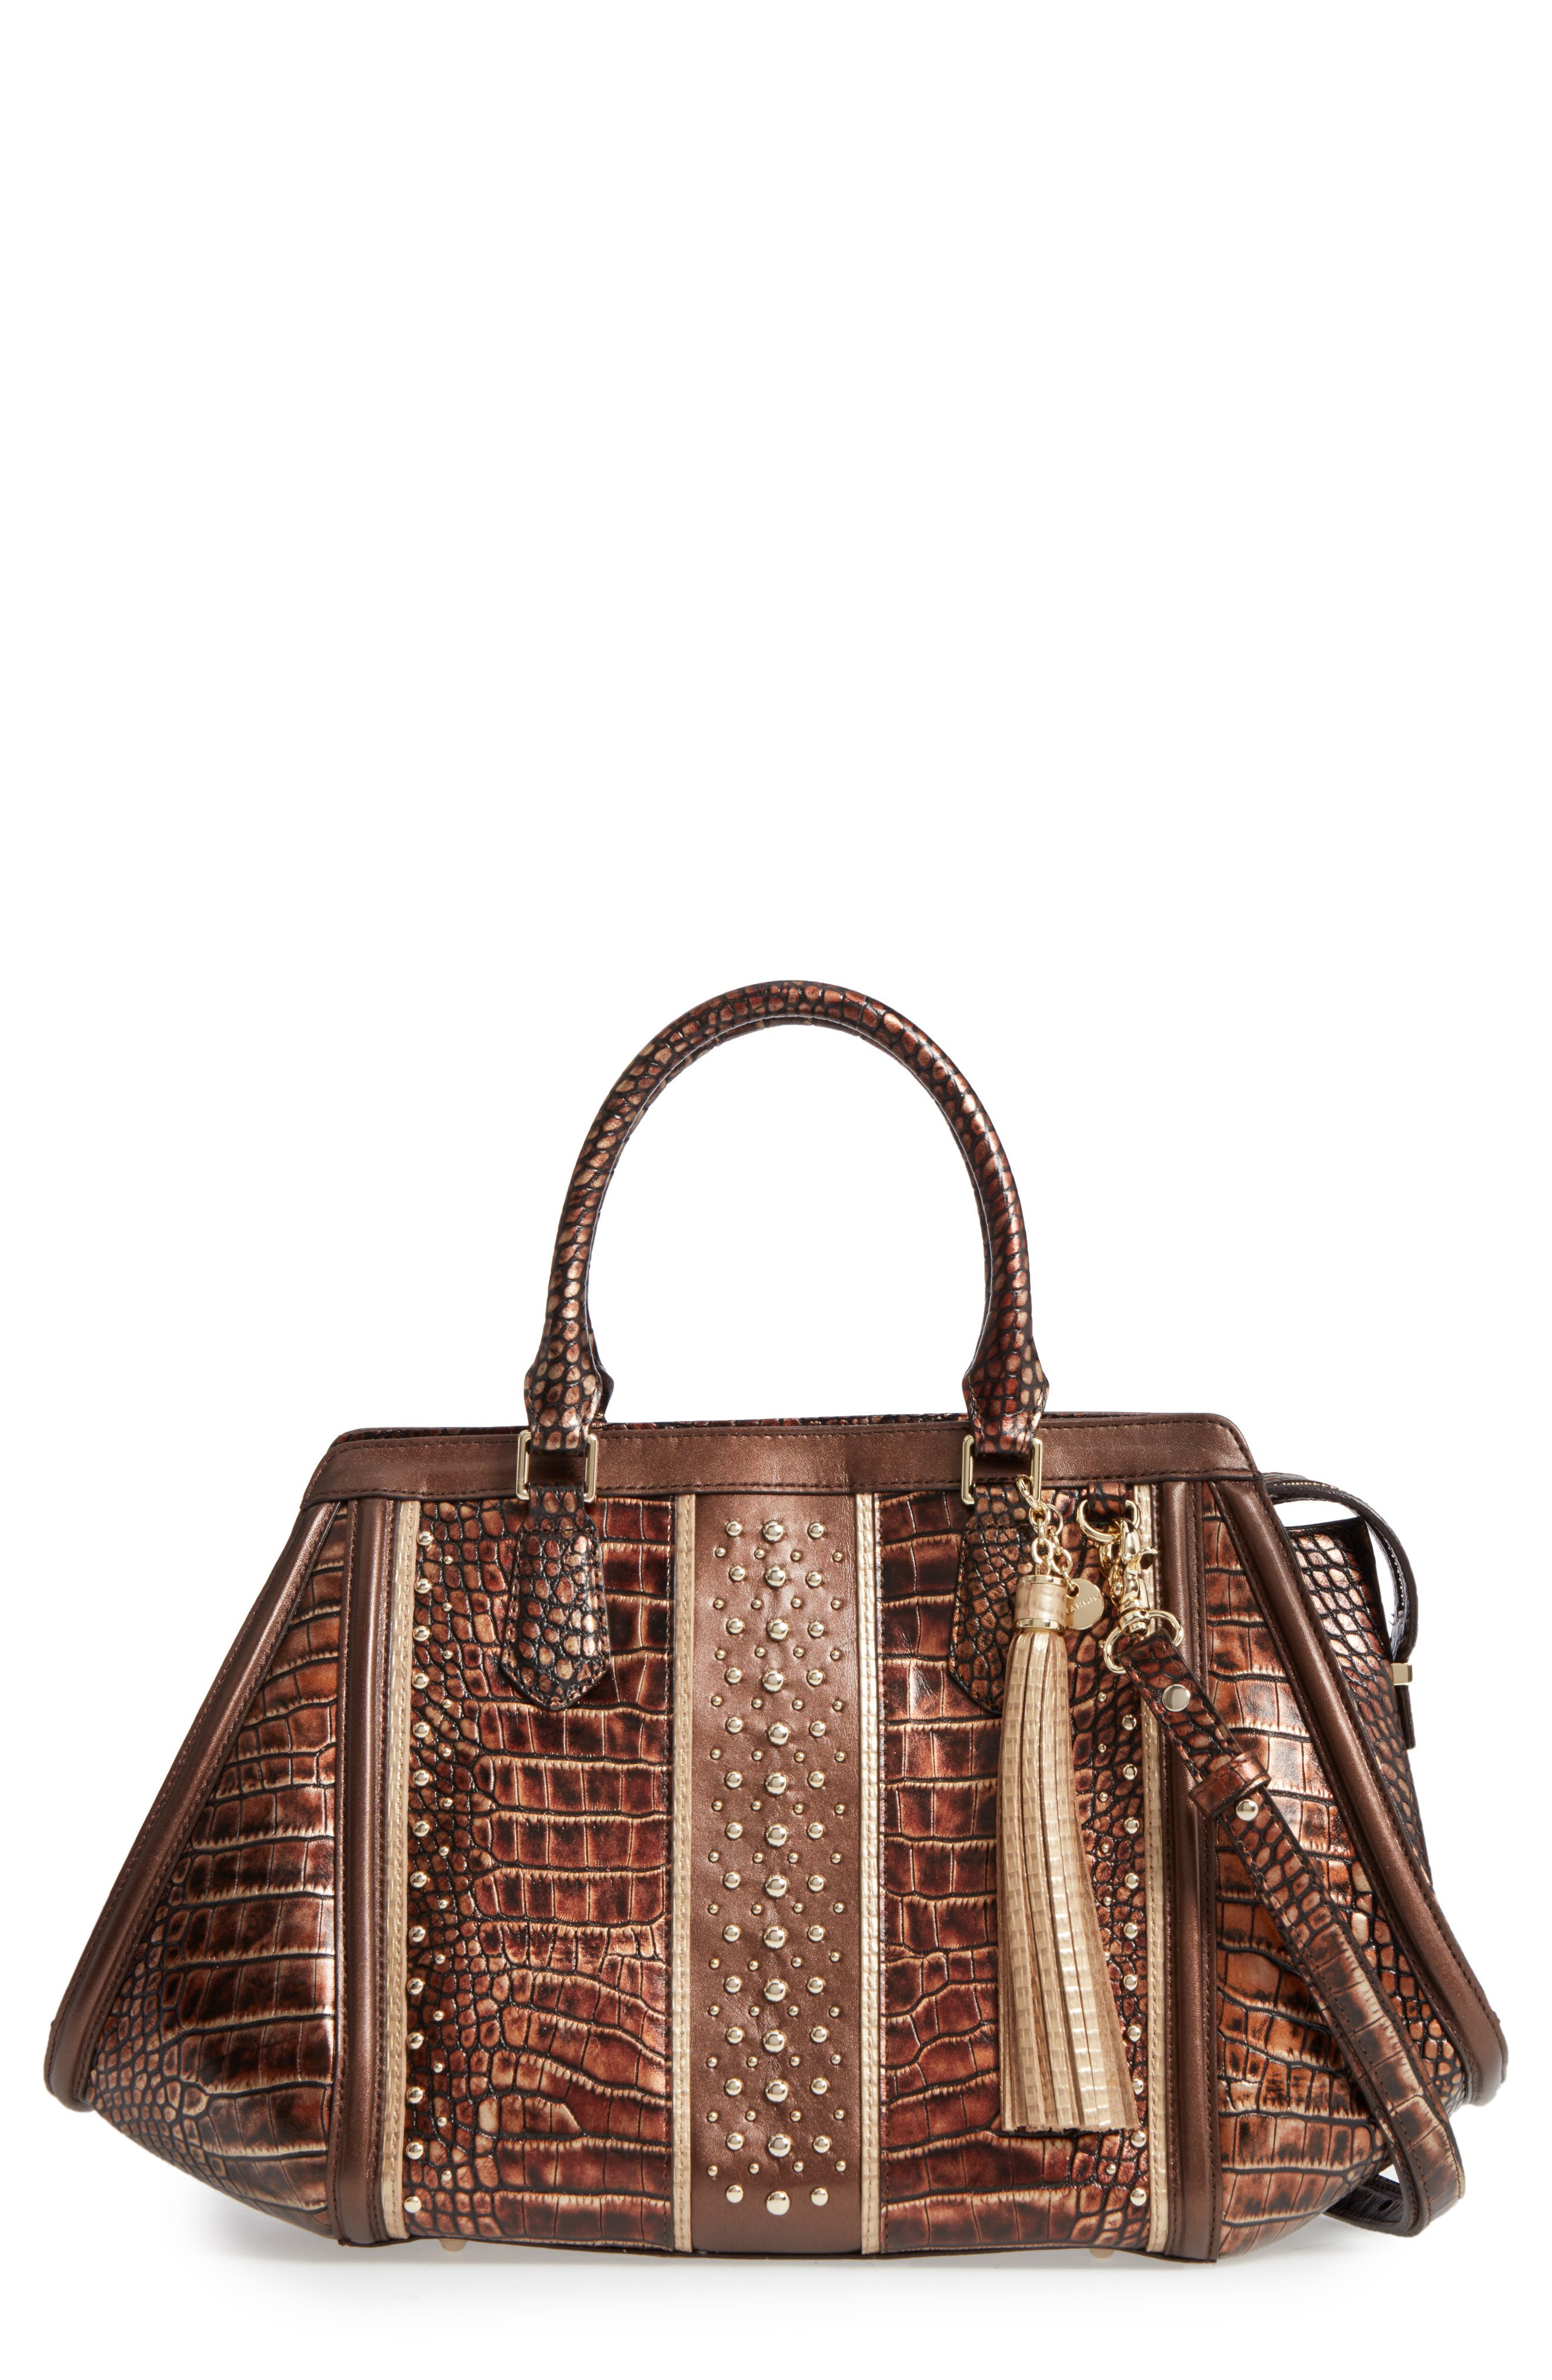 Milan Arden Embossed Leather Satchel,                             Main thumbnail 1, color,                             200